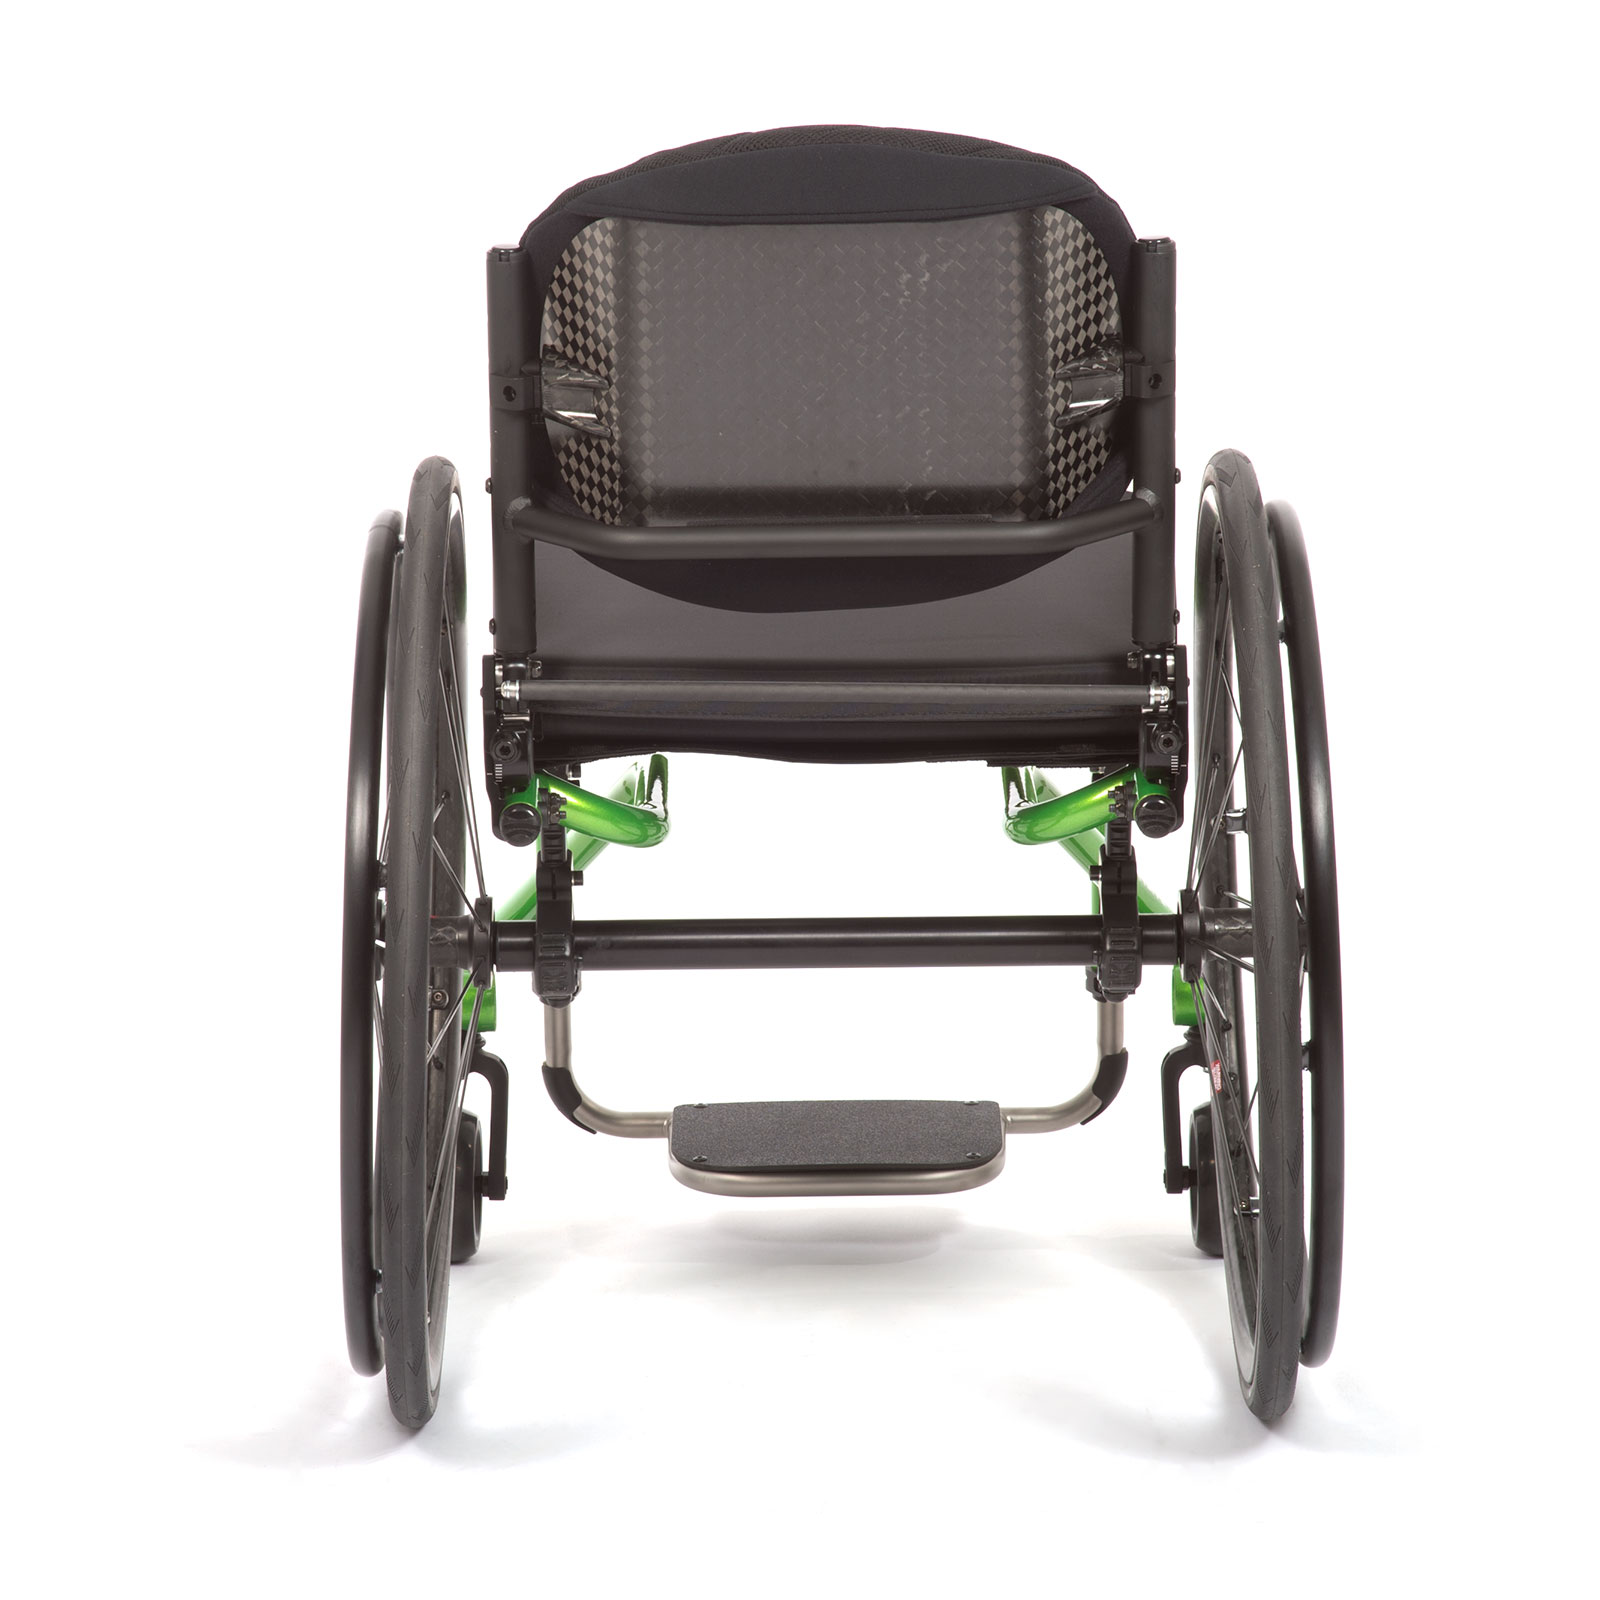 The Back acid green of the Wheelchair.